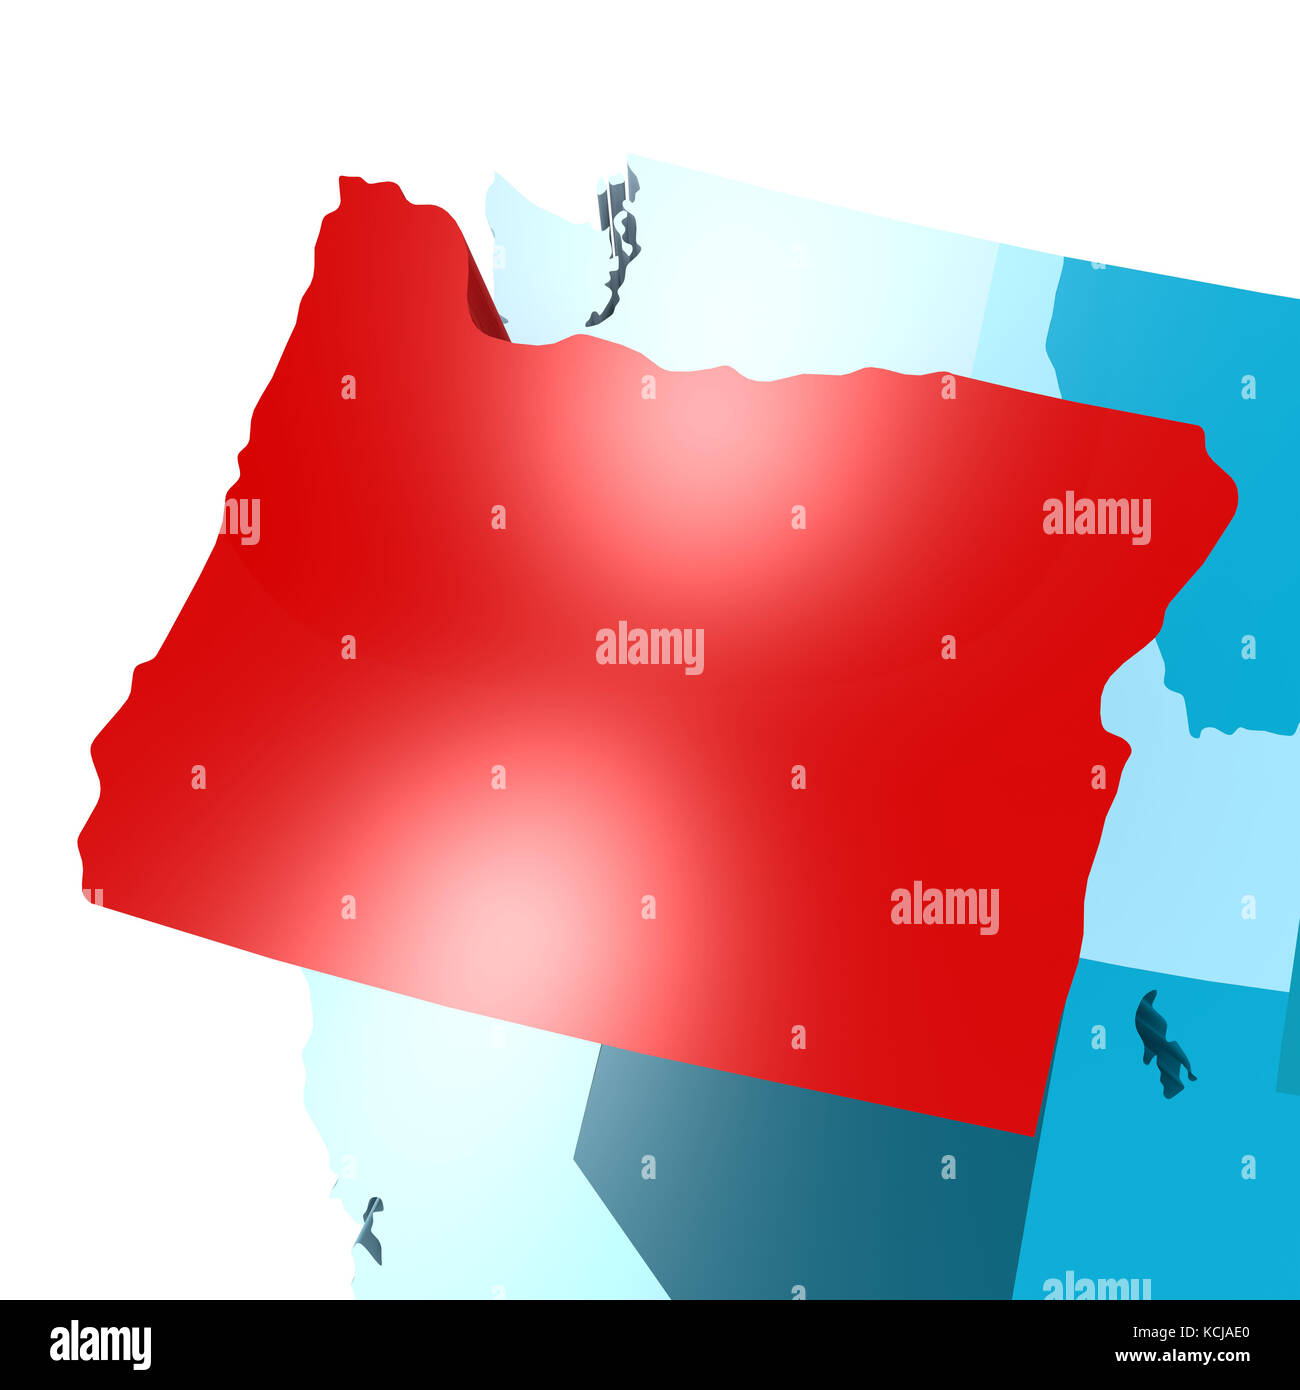 Oregon map on blue USA map image with hires rendered artwork that